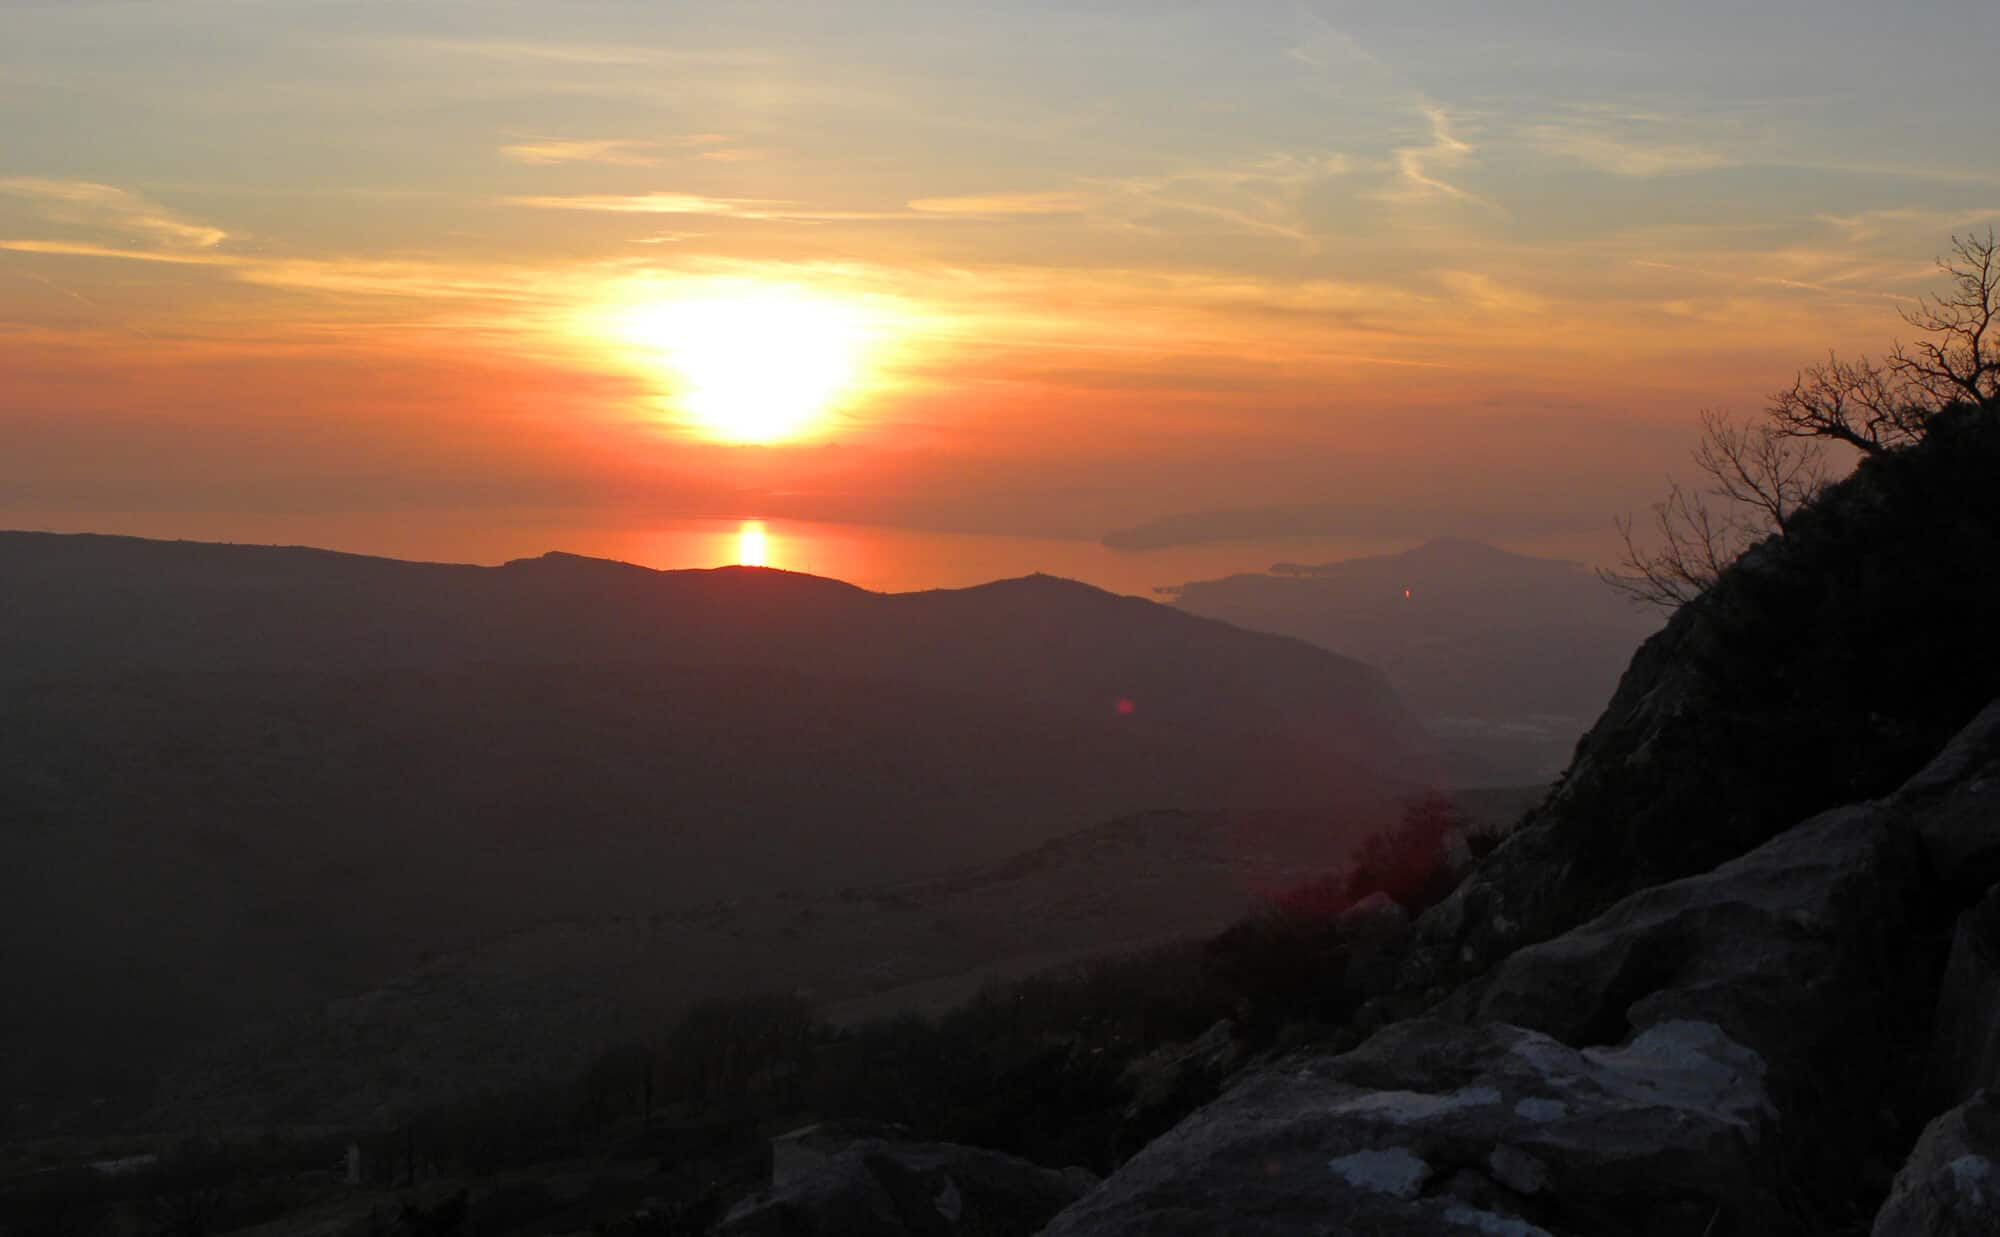 sunset views from Mosor mountain